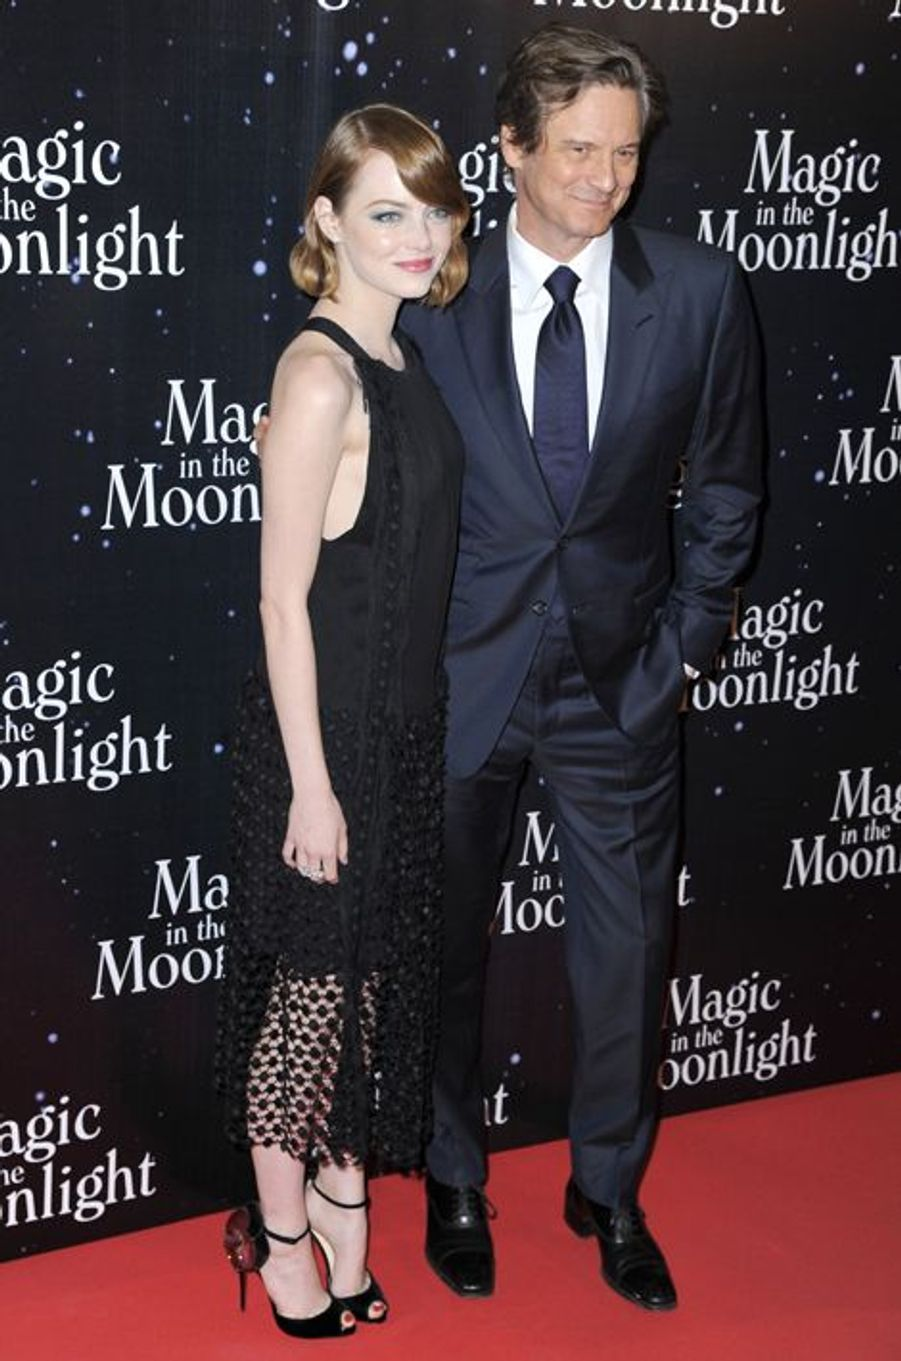 à Paris, Jeudi 11 septembre 2014, pour l'avant première de «Magic in the Moonlight» de Woody Allen.